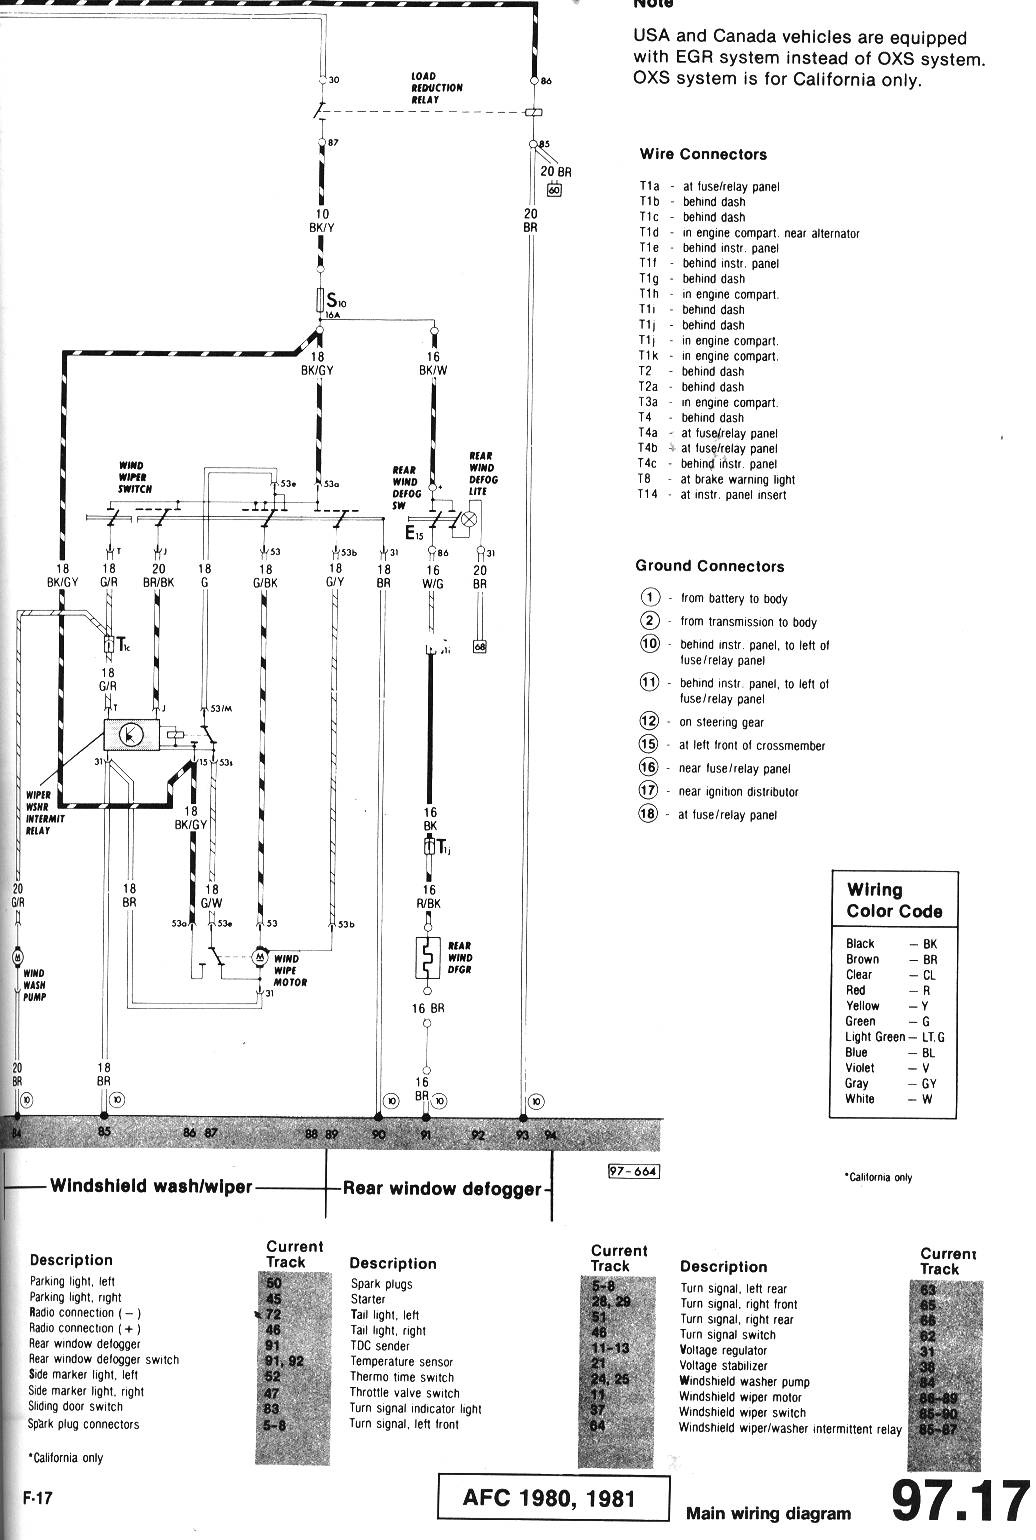 Vw Wiper Motor Wiring Diagram Posts 79 Camaro Thesamba Com Beetle Late Model Super 1968 Up View Topic Headlight